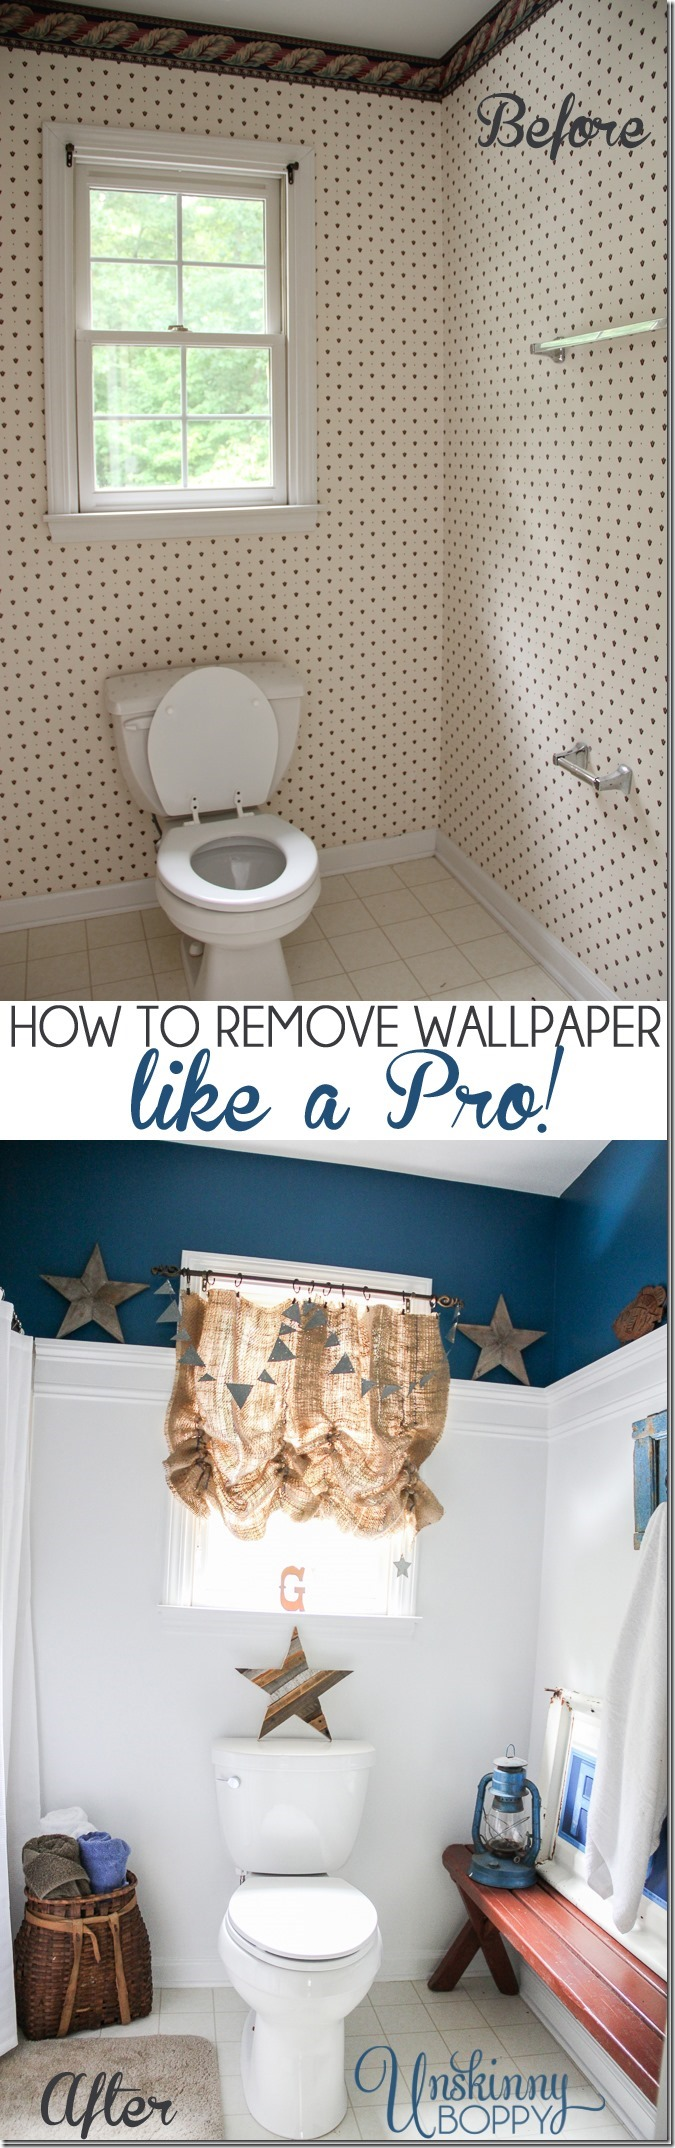 How-to-Remove-Wallpaper-like-a_Pro_thumb